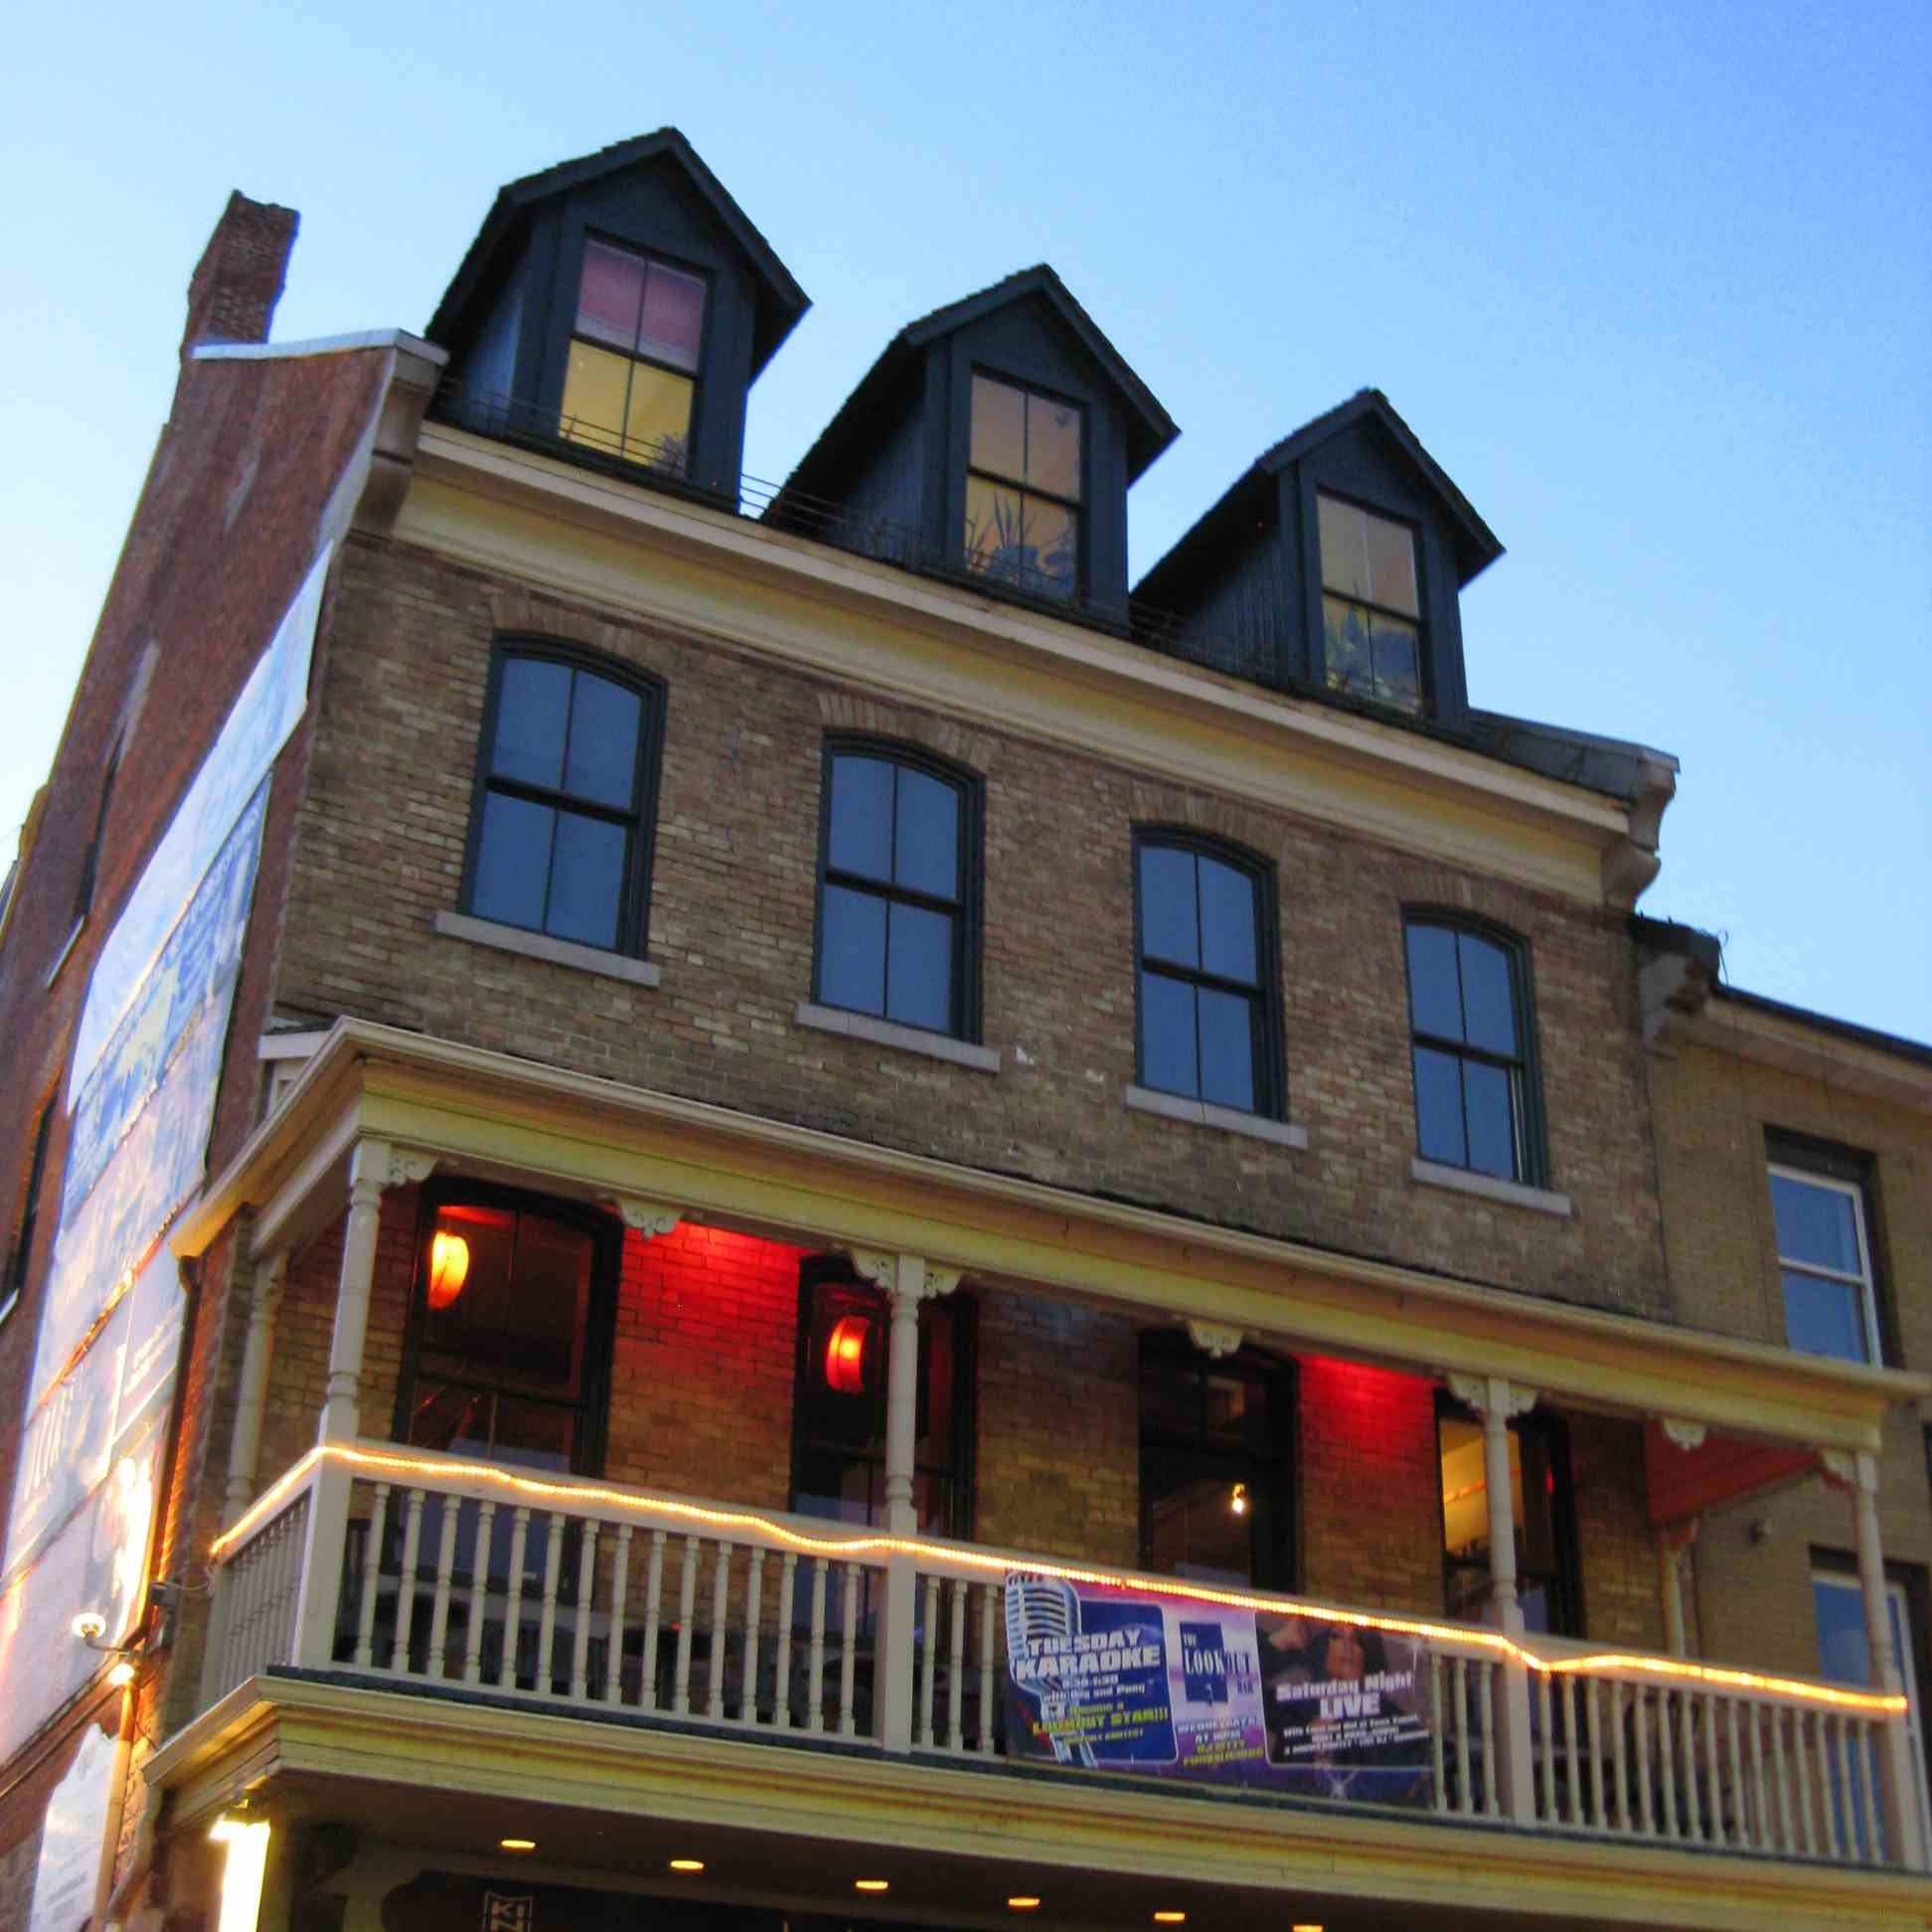 The Lookout Bar, a festive and welcoming gay nightspot in the vibrant ByWard Market district (on the ground floor is the excellent Pan-Asian restaurant, Kinki